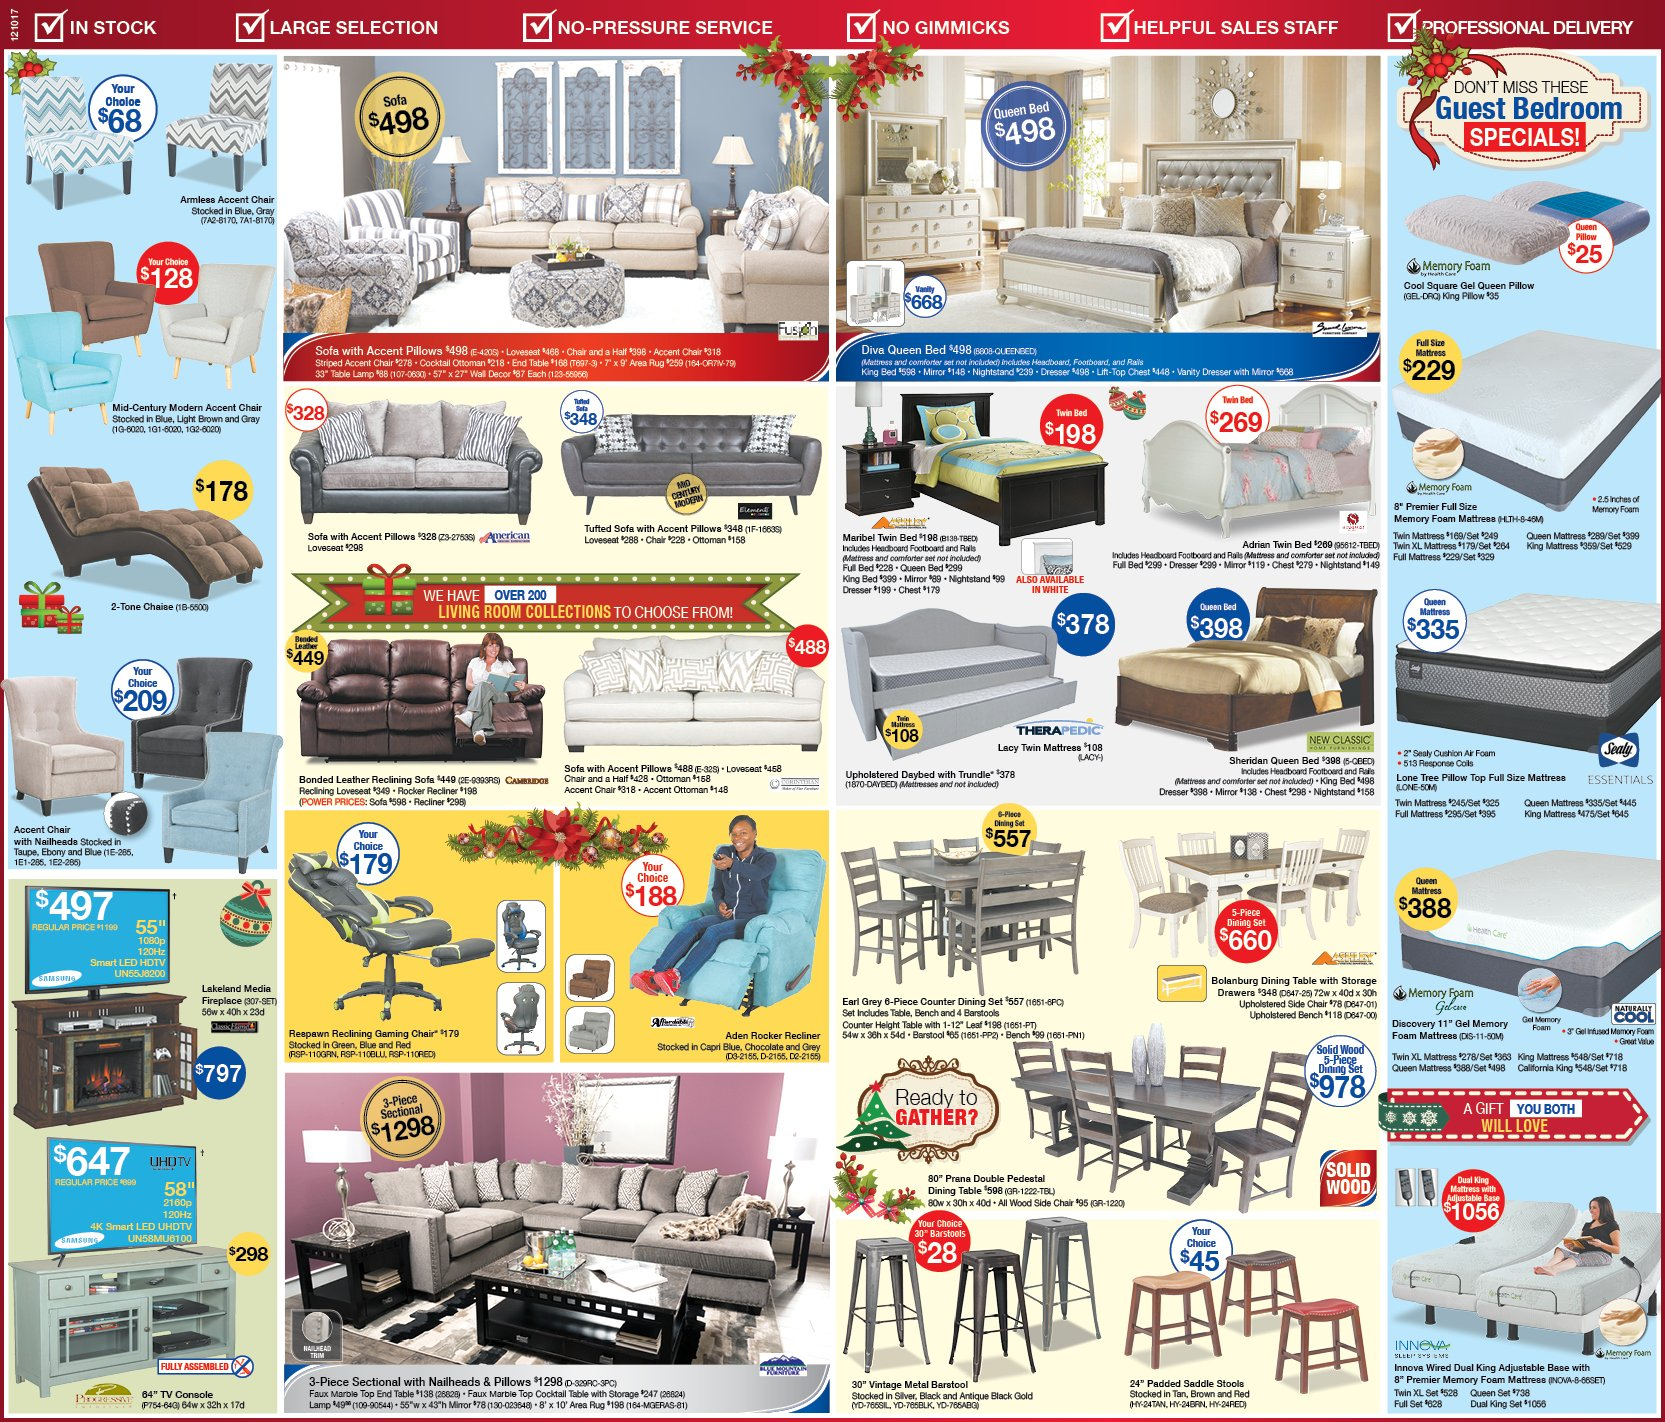 Hot Summer Savings Newspaper Ad | Best Prices on living room furniture